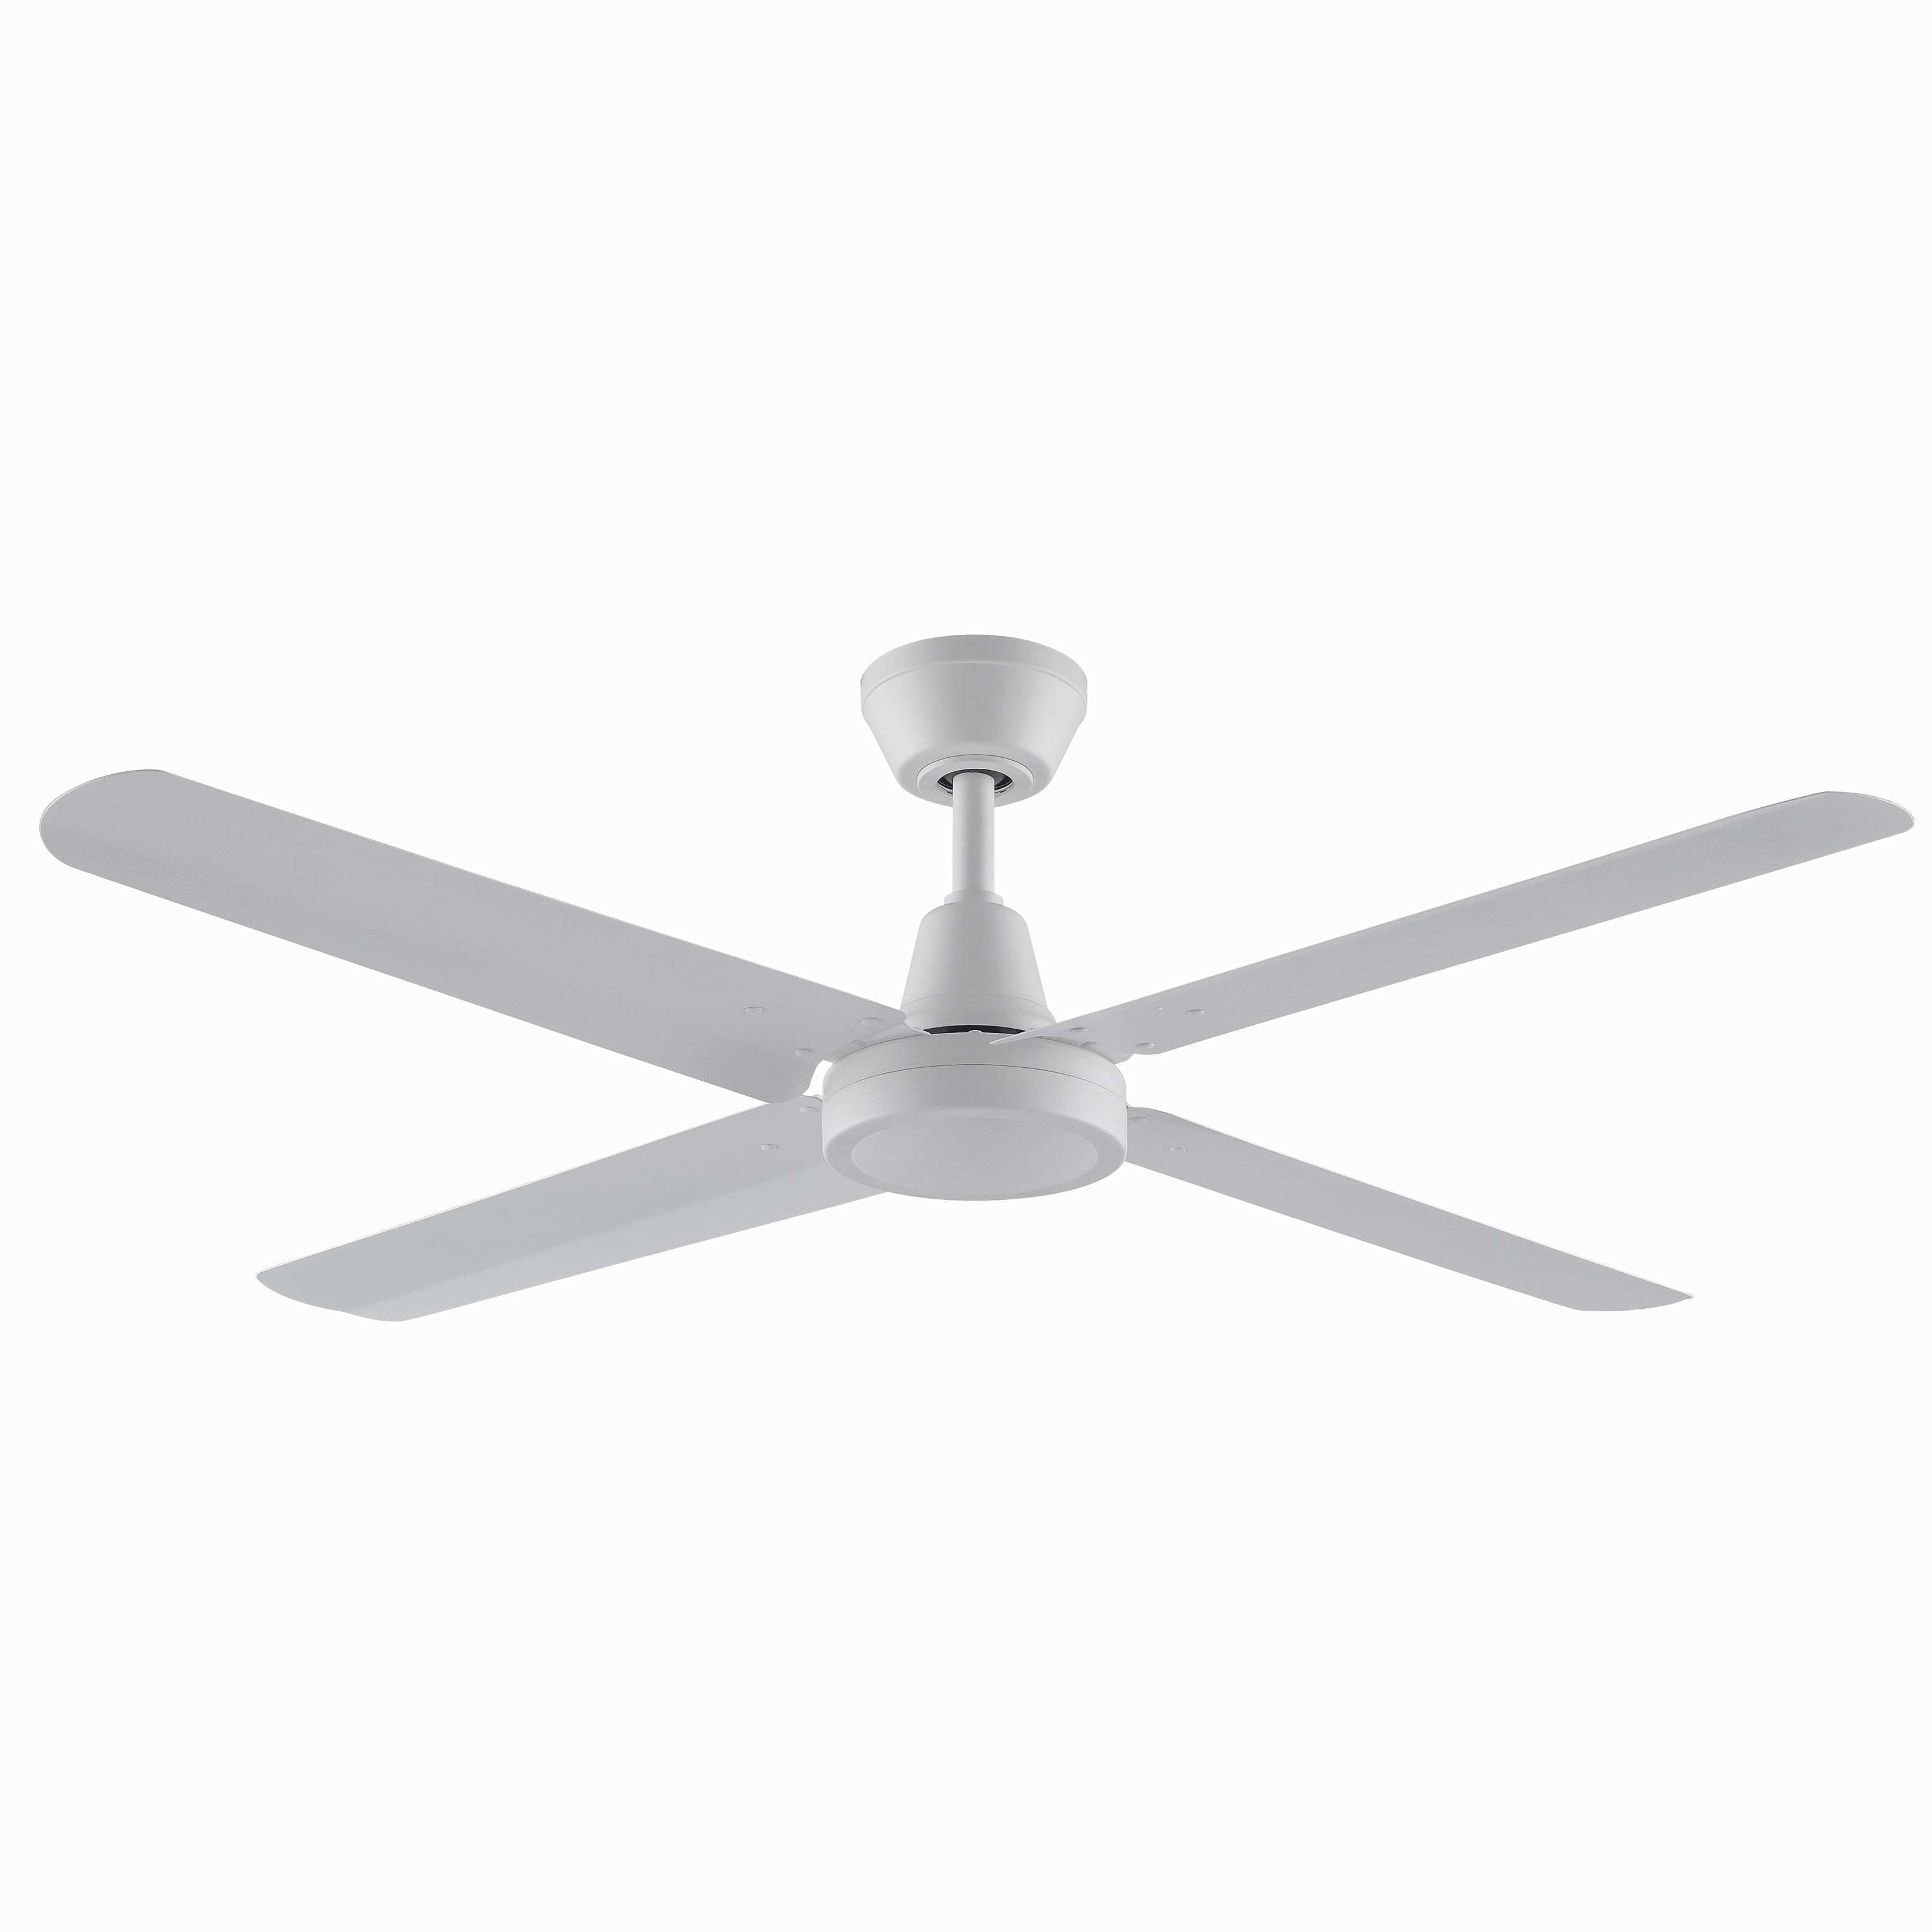 2018 Commercial Outdoor Ceiling Fans With Regard To Commercial Outdoor Ceiling Fans (View 2 of 20)